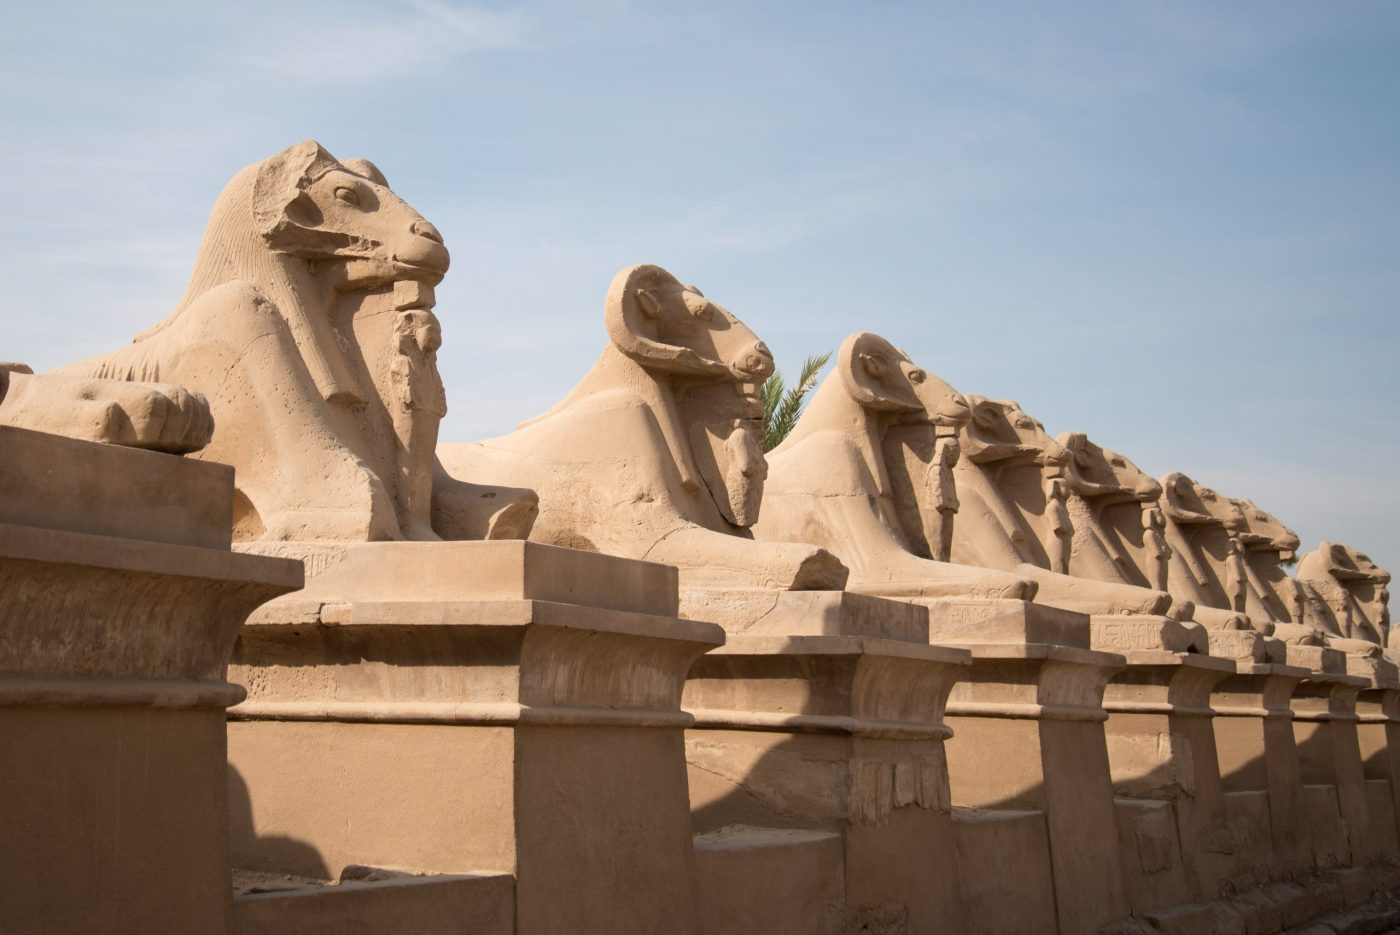 Avenue of the Ram Head Sphinxes - Karnak Temple in Luxor, Egypt